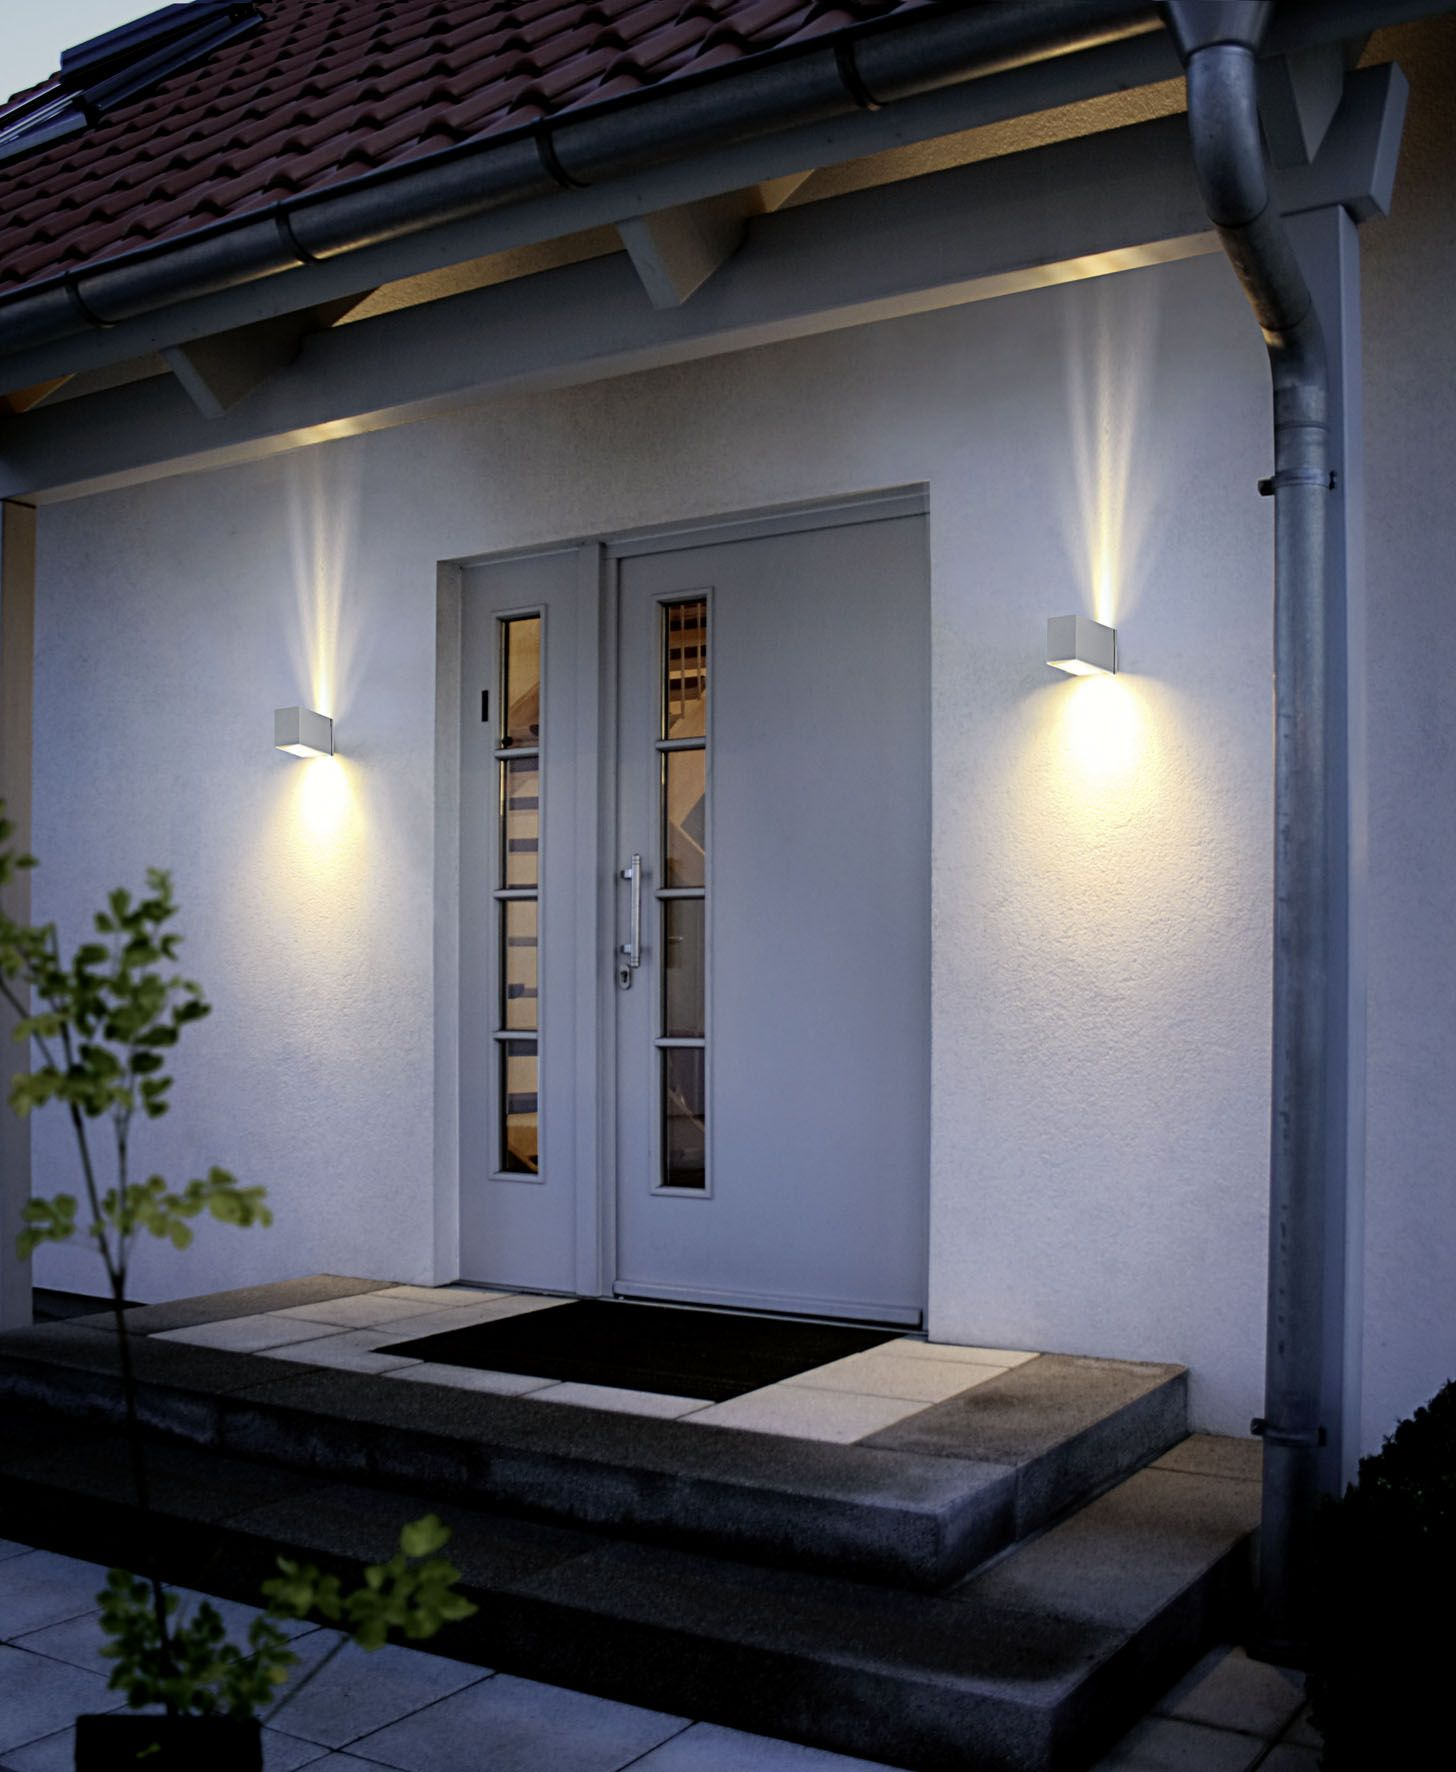 Eglo outdoor lighting wall light tabo silver finish jd s eglo outdoor lighting wall light tabo silver finish workwithnaturefo